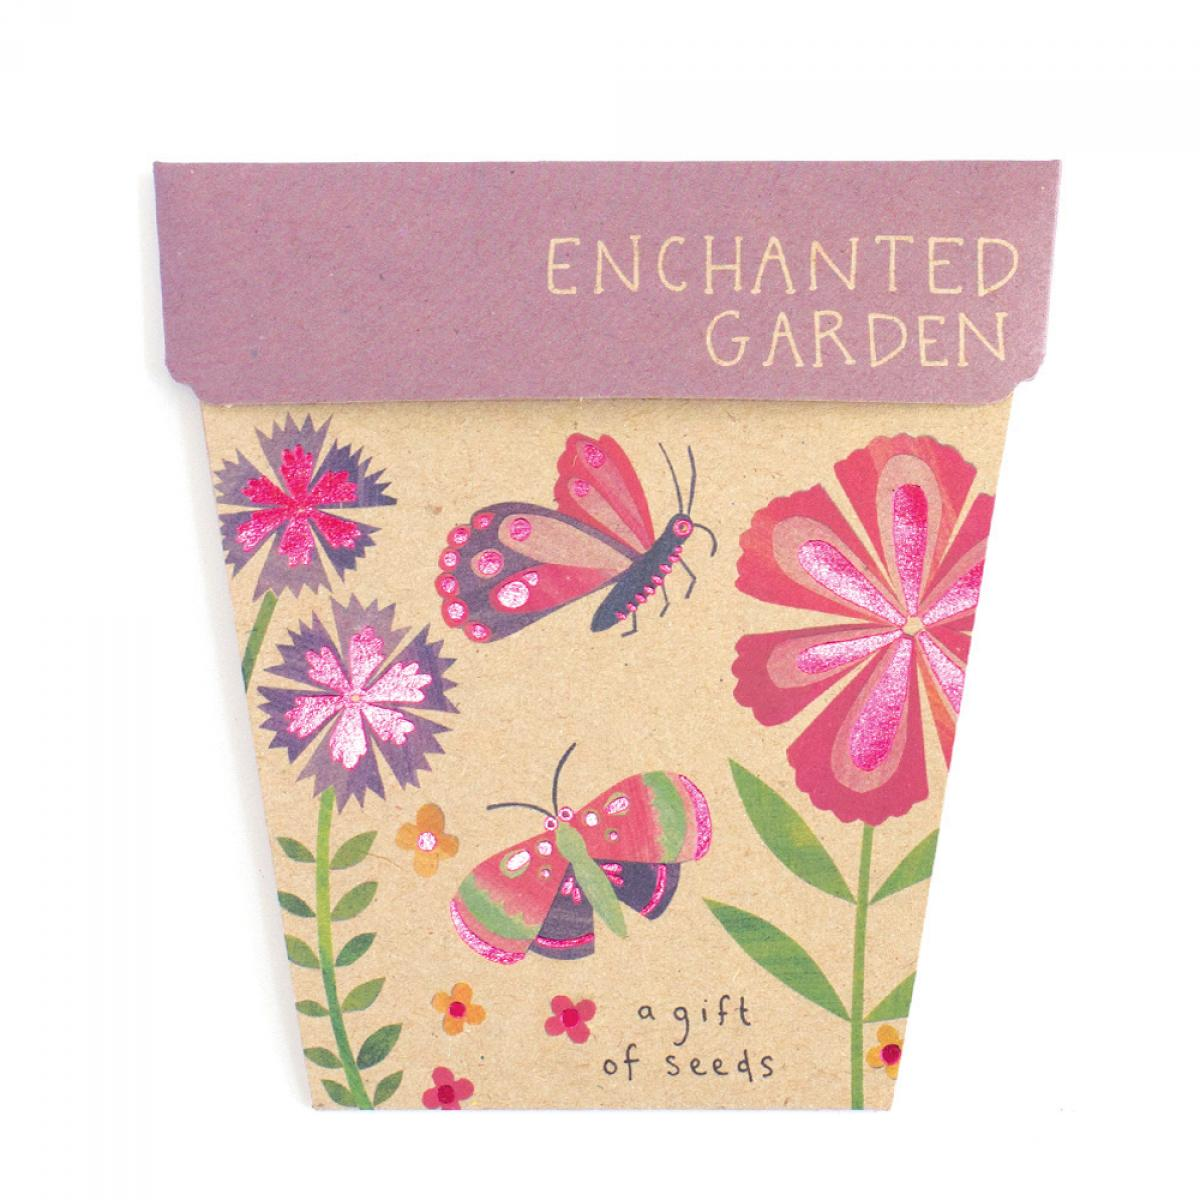 Sow 'n Sow Gift Card with Seeds - Enchanted Garden - Gift of Seeds - Throw Some Seeds - Australian gardening gifts and eco products online!